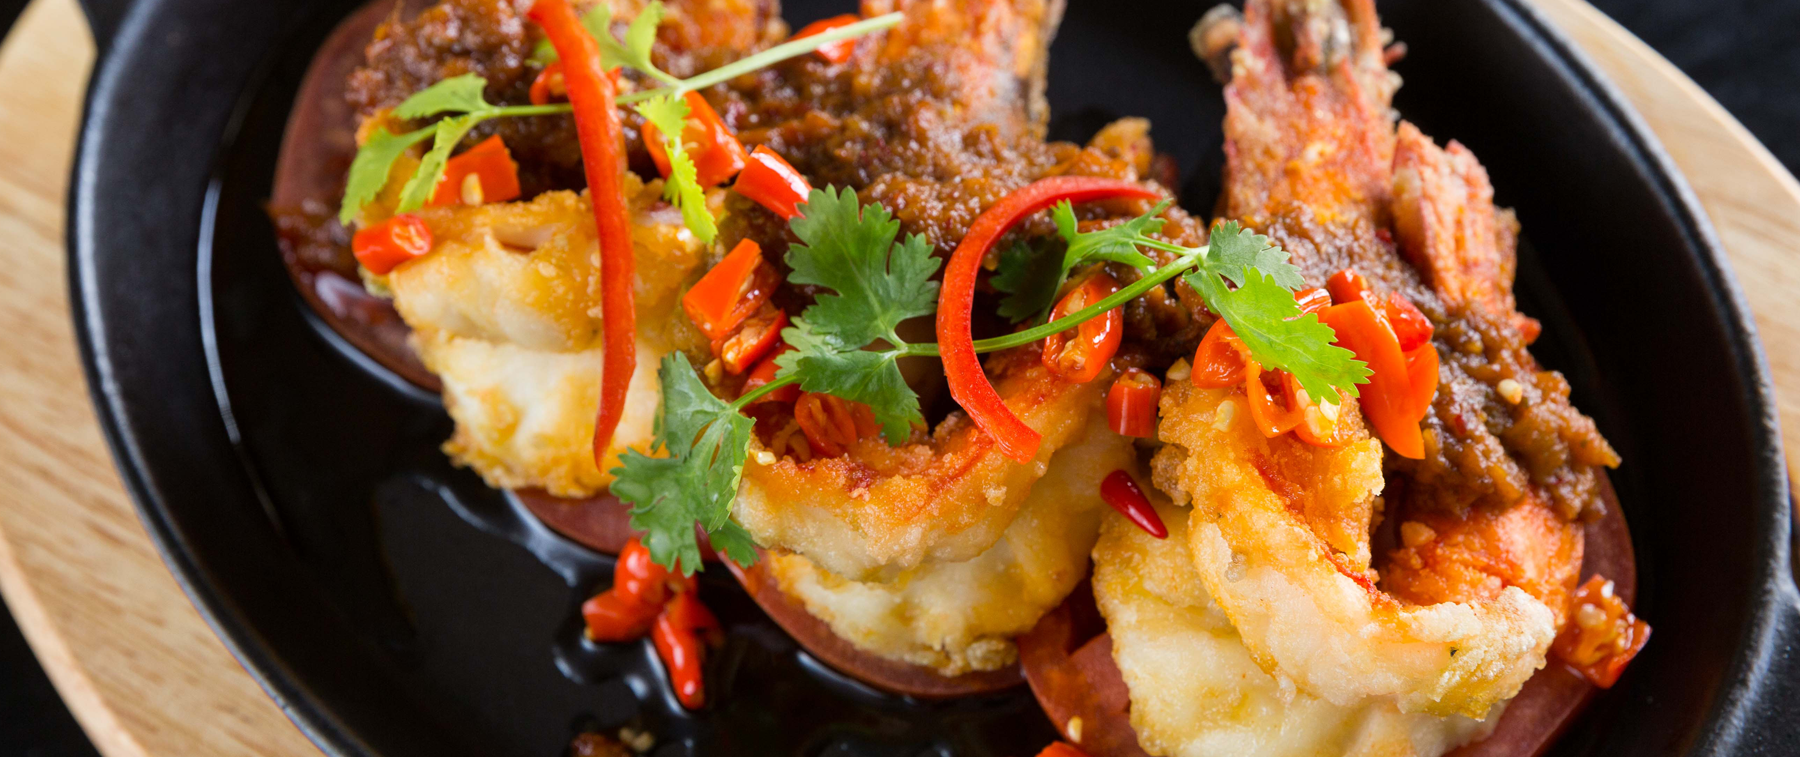 jumbo prawns in garlic and chili sauce